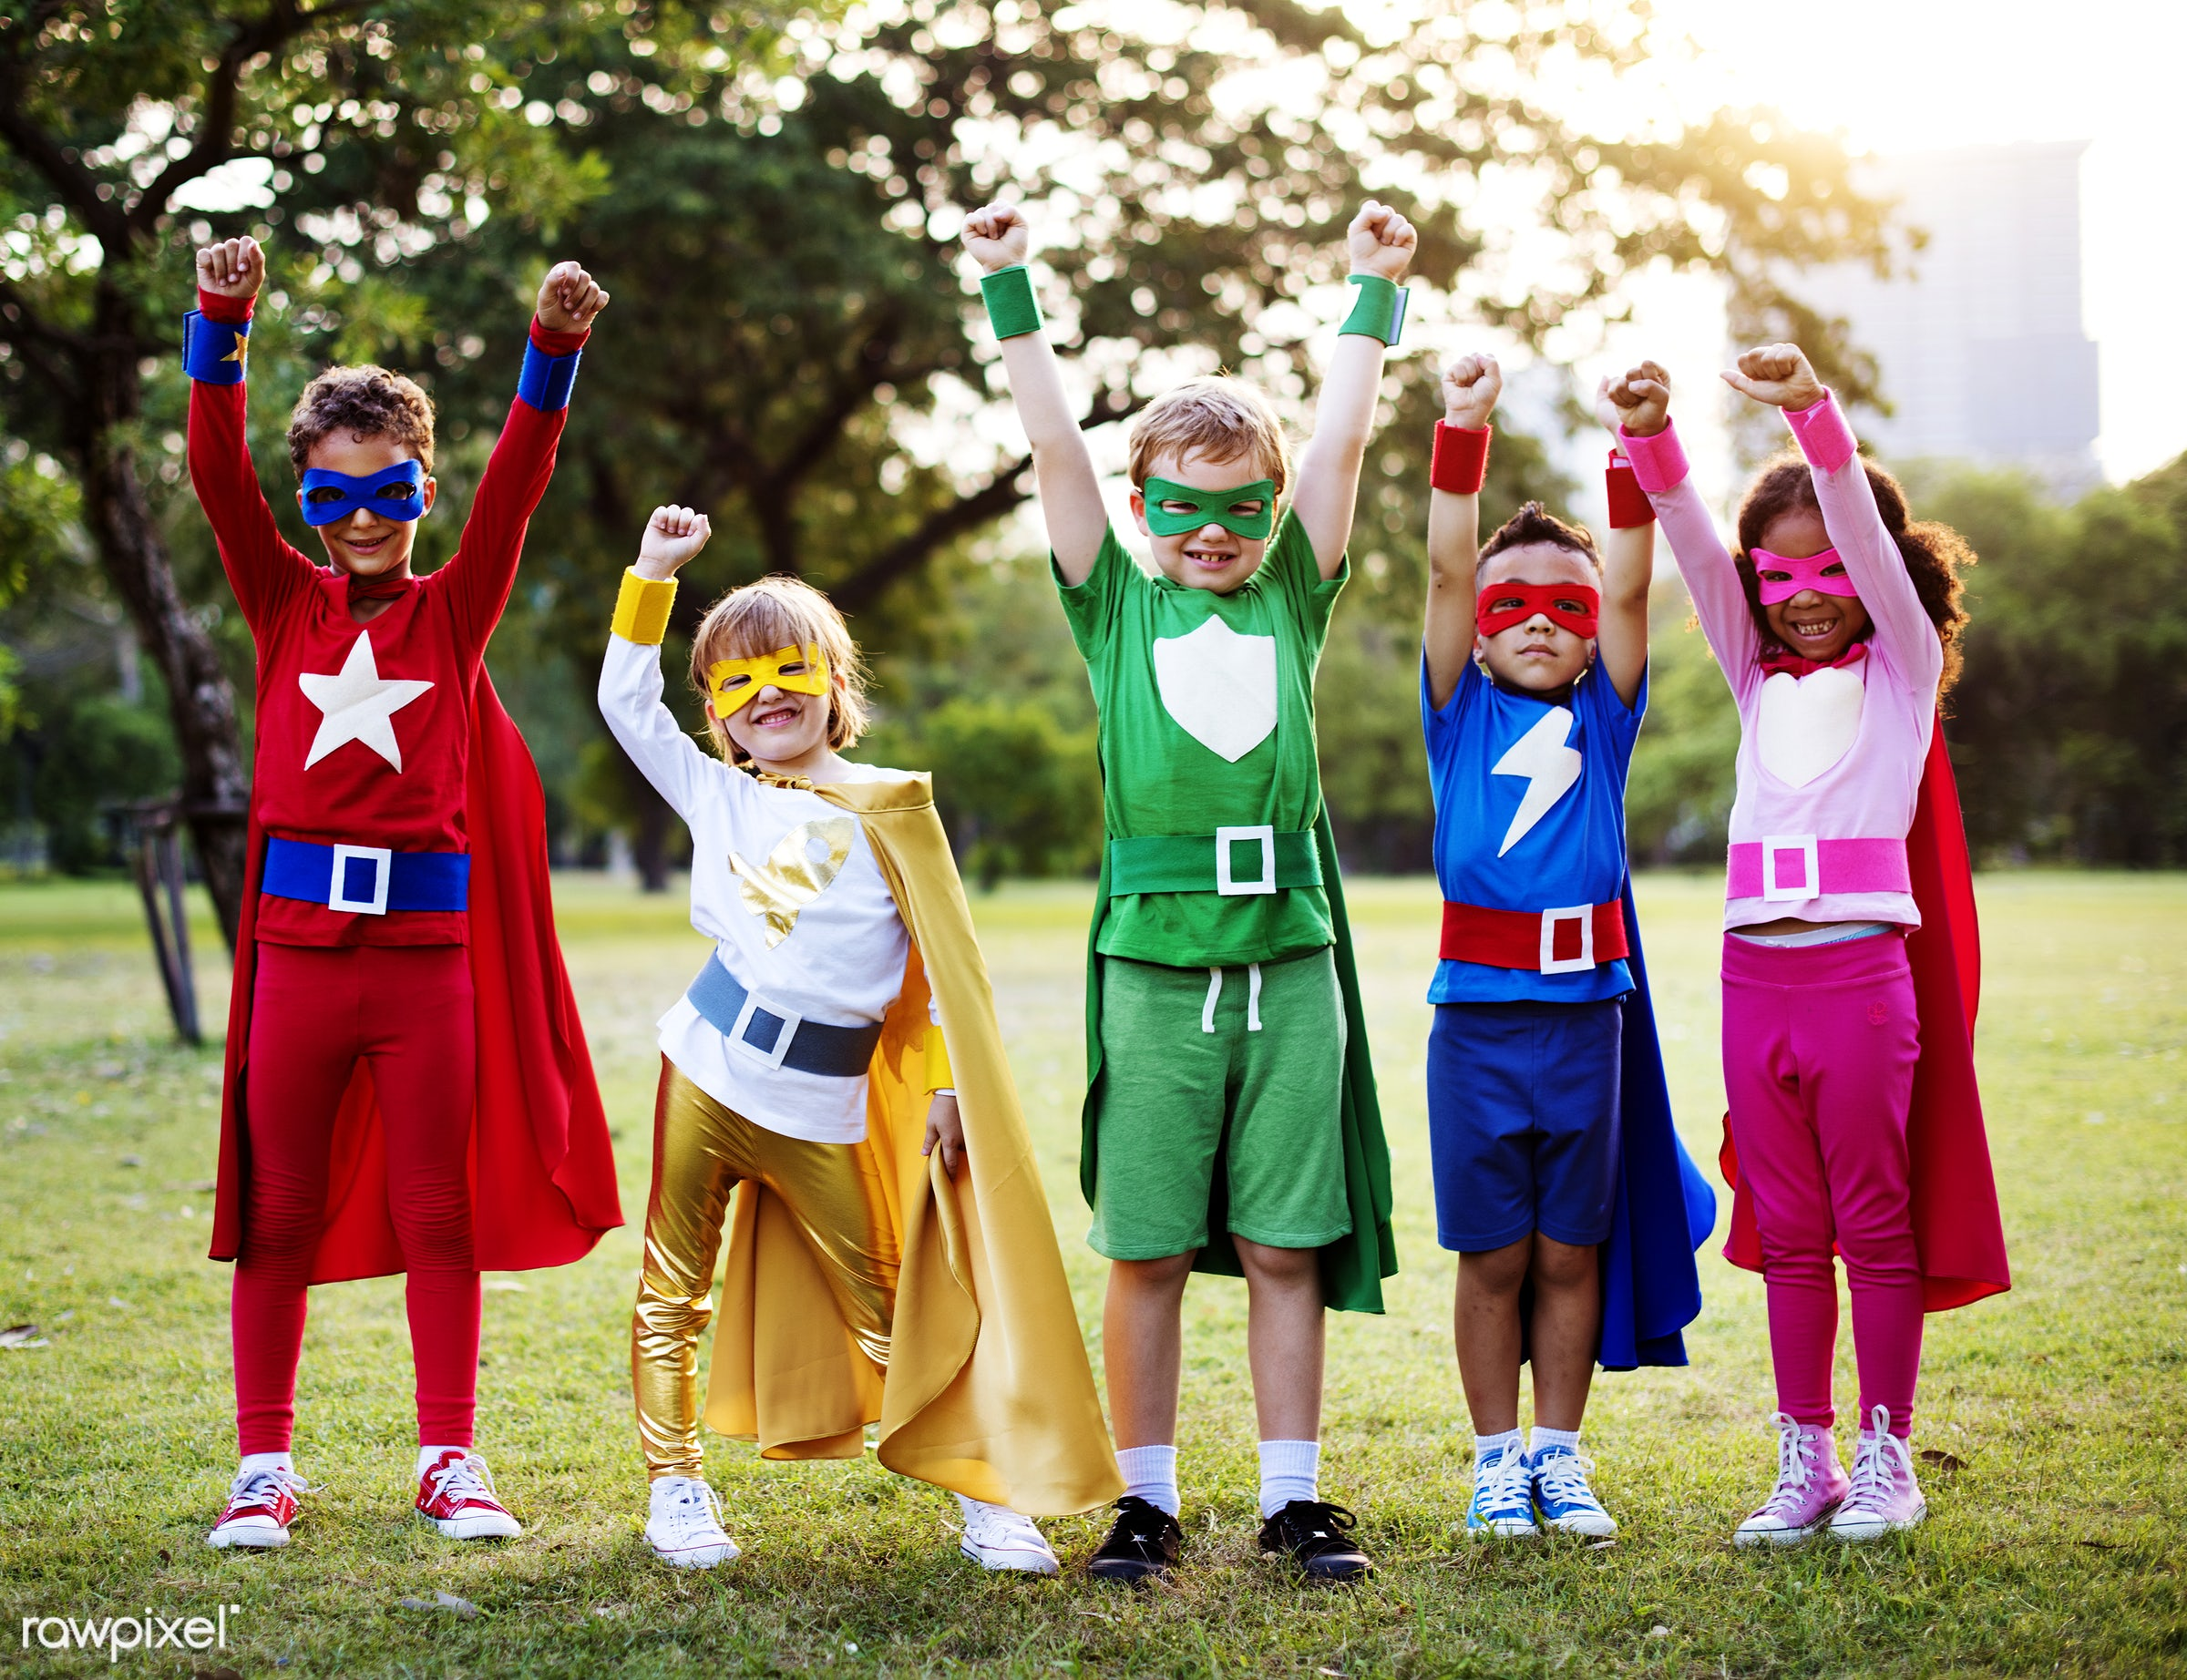 Superhero kids with superpowers - superhero, children, active, activities, adorable, african american, boys, cheerful, child...